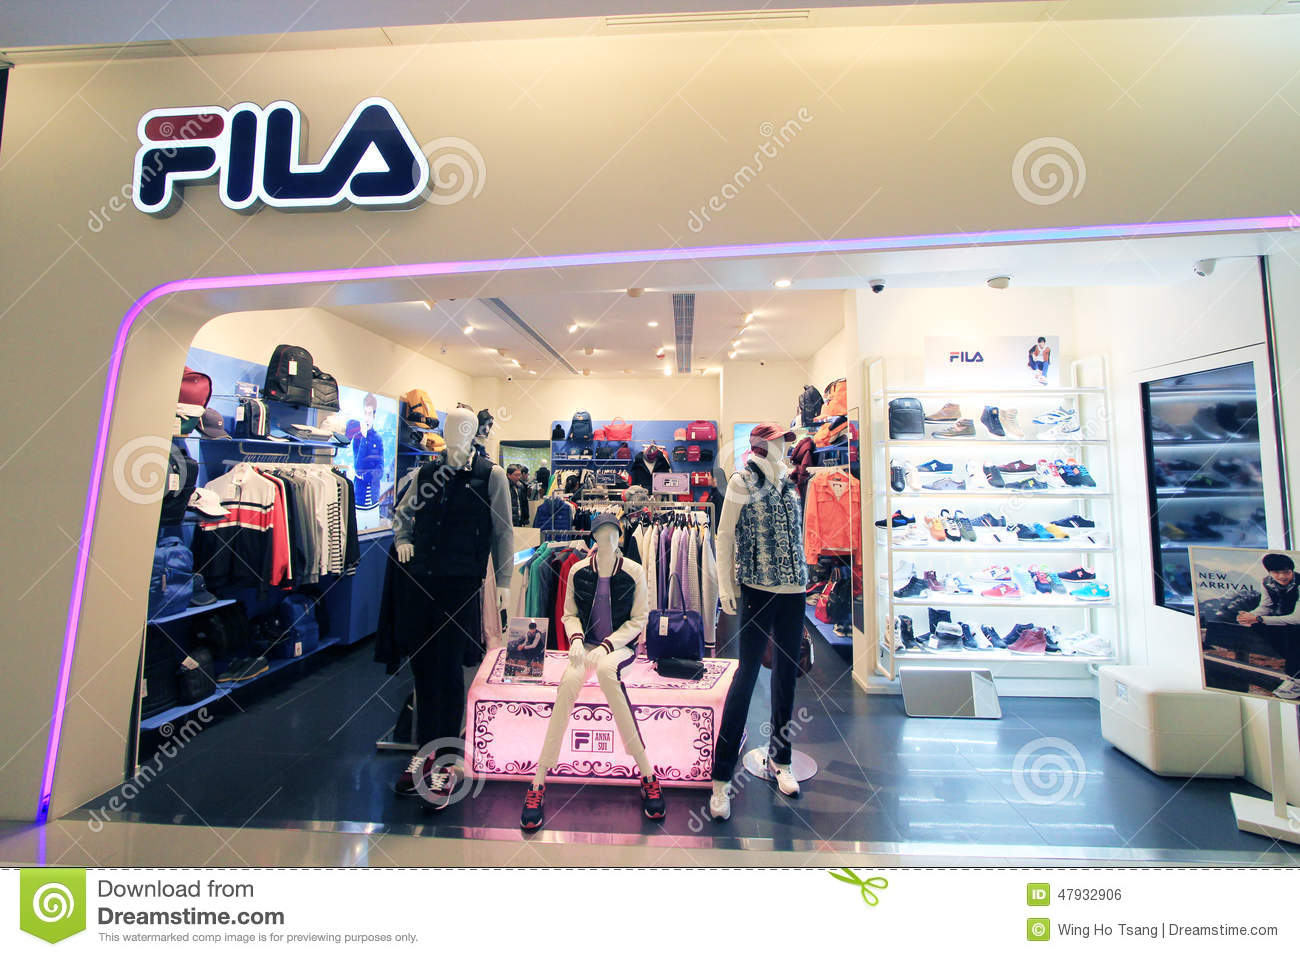 Fila shop in hong kong editorial photo. Image of clothes - 47932906